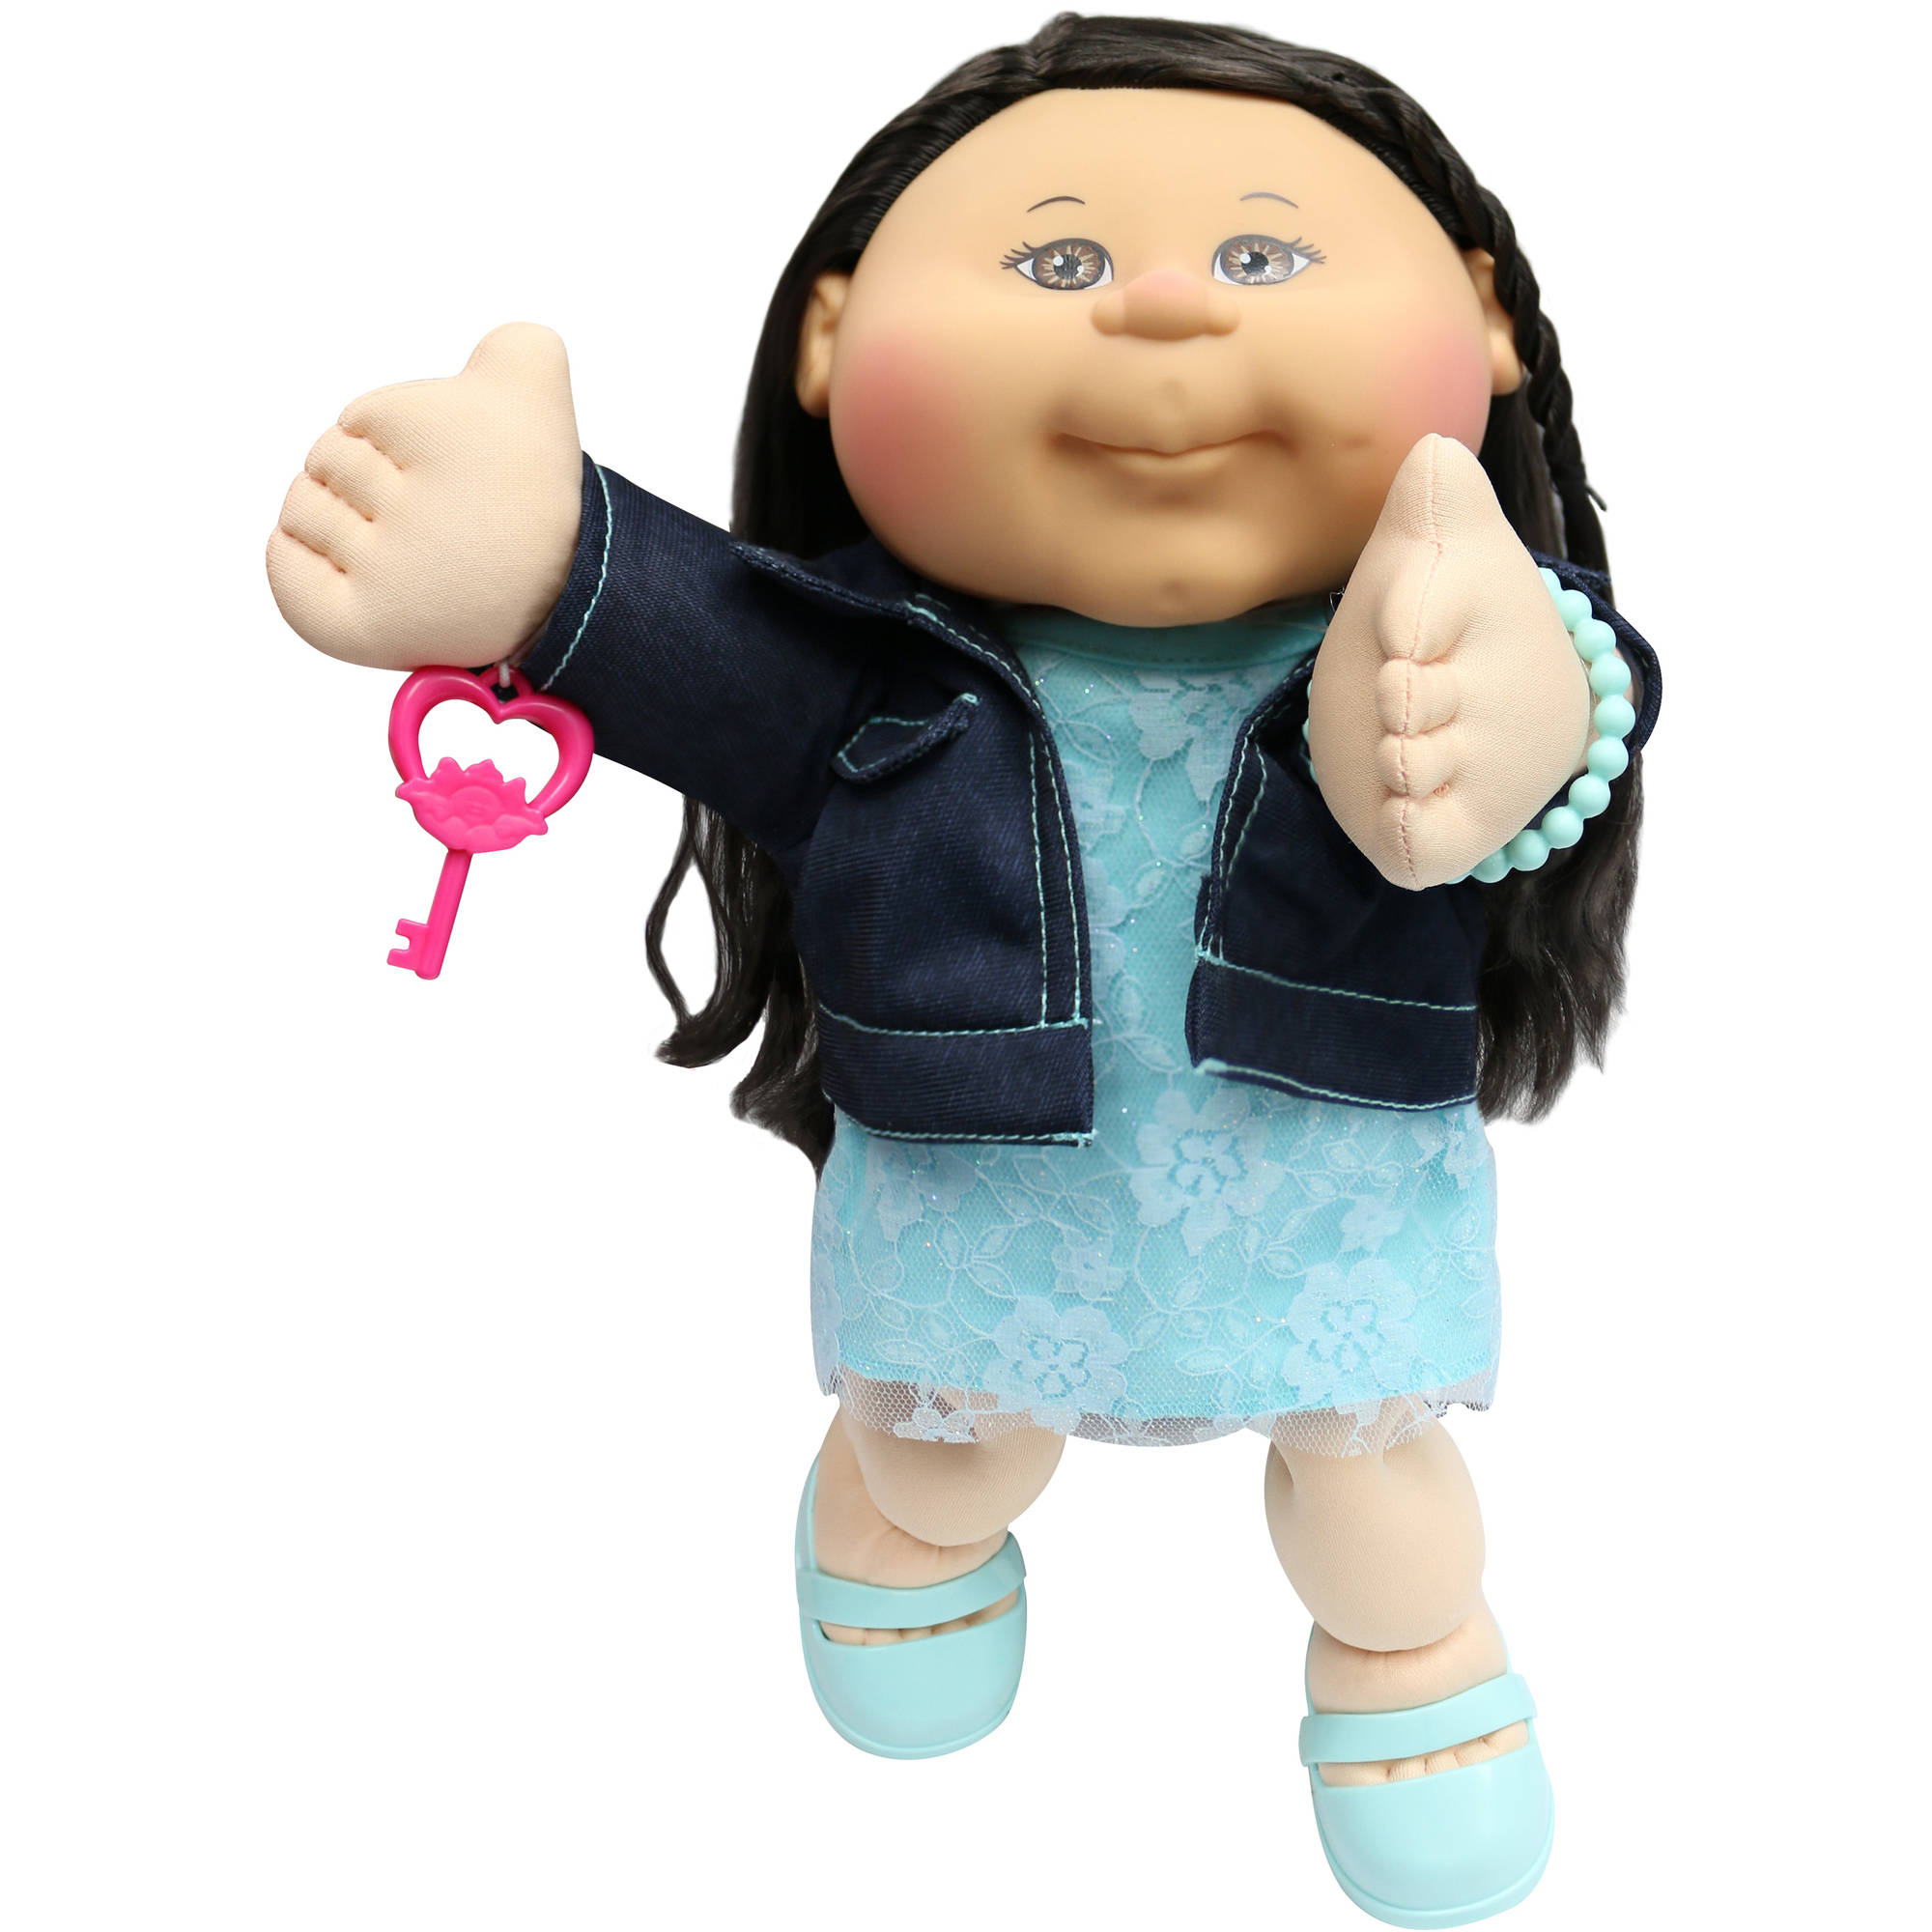 Spending asian boy cabbage patch